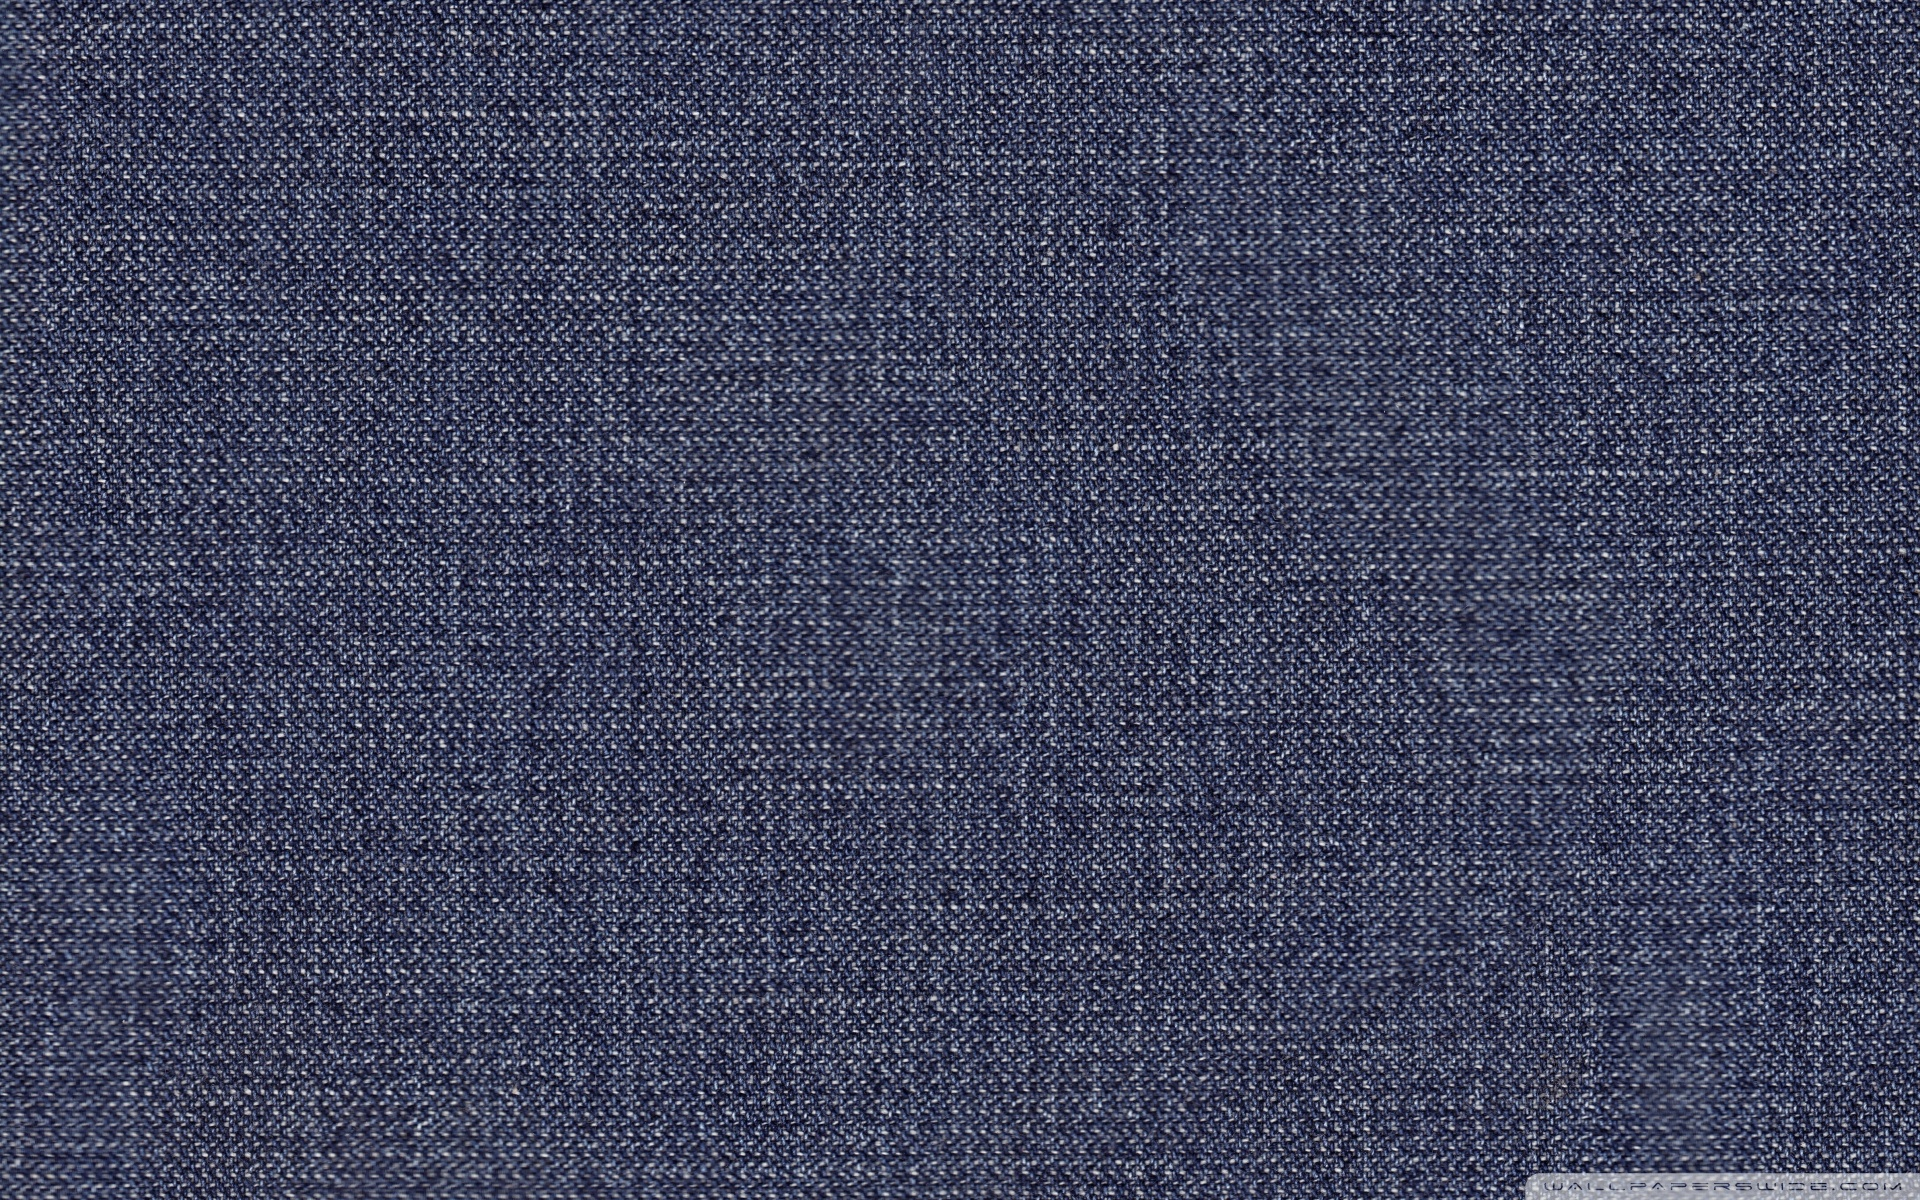 Denim Wallpaper